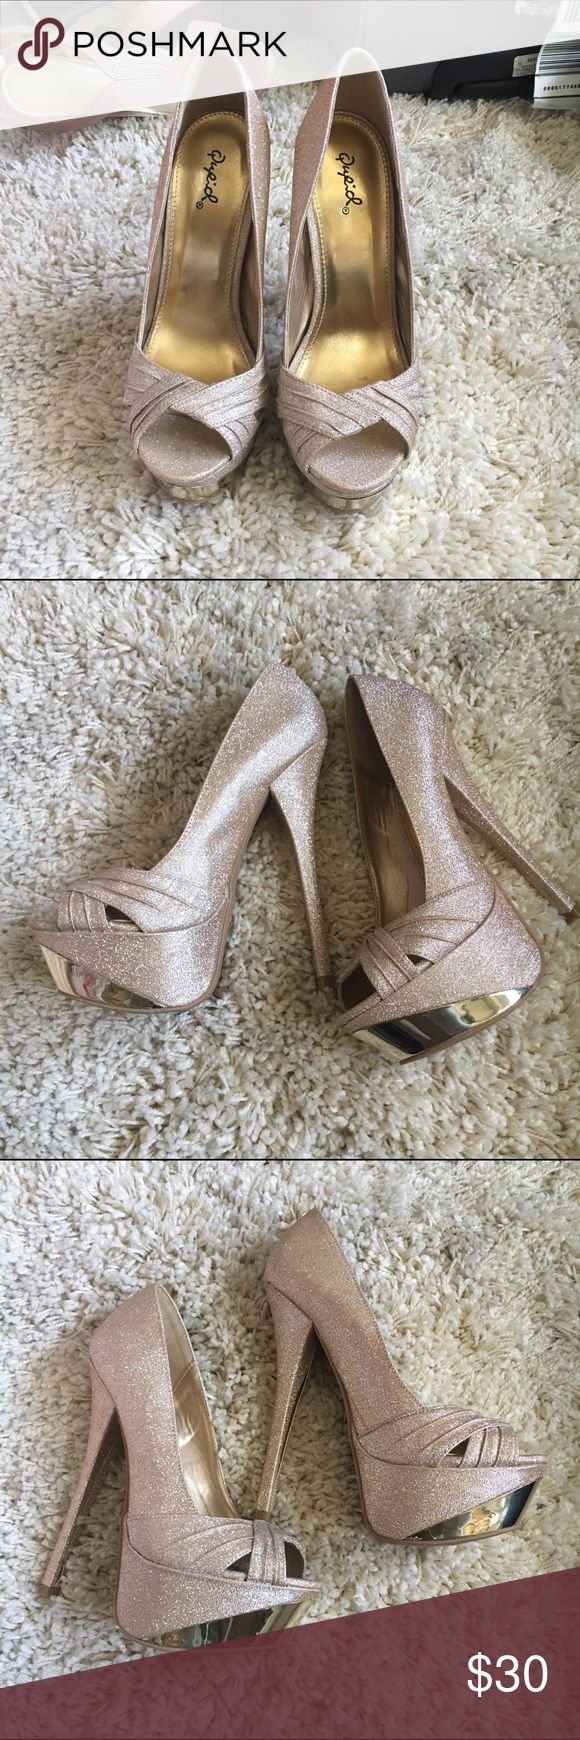 Champagne Sparkle Peep Toe Pumps Really hot shoes. Worn once Shoes Platforms